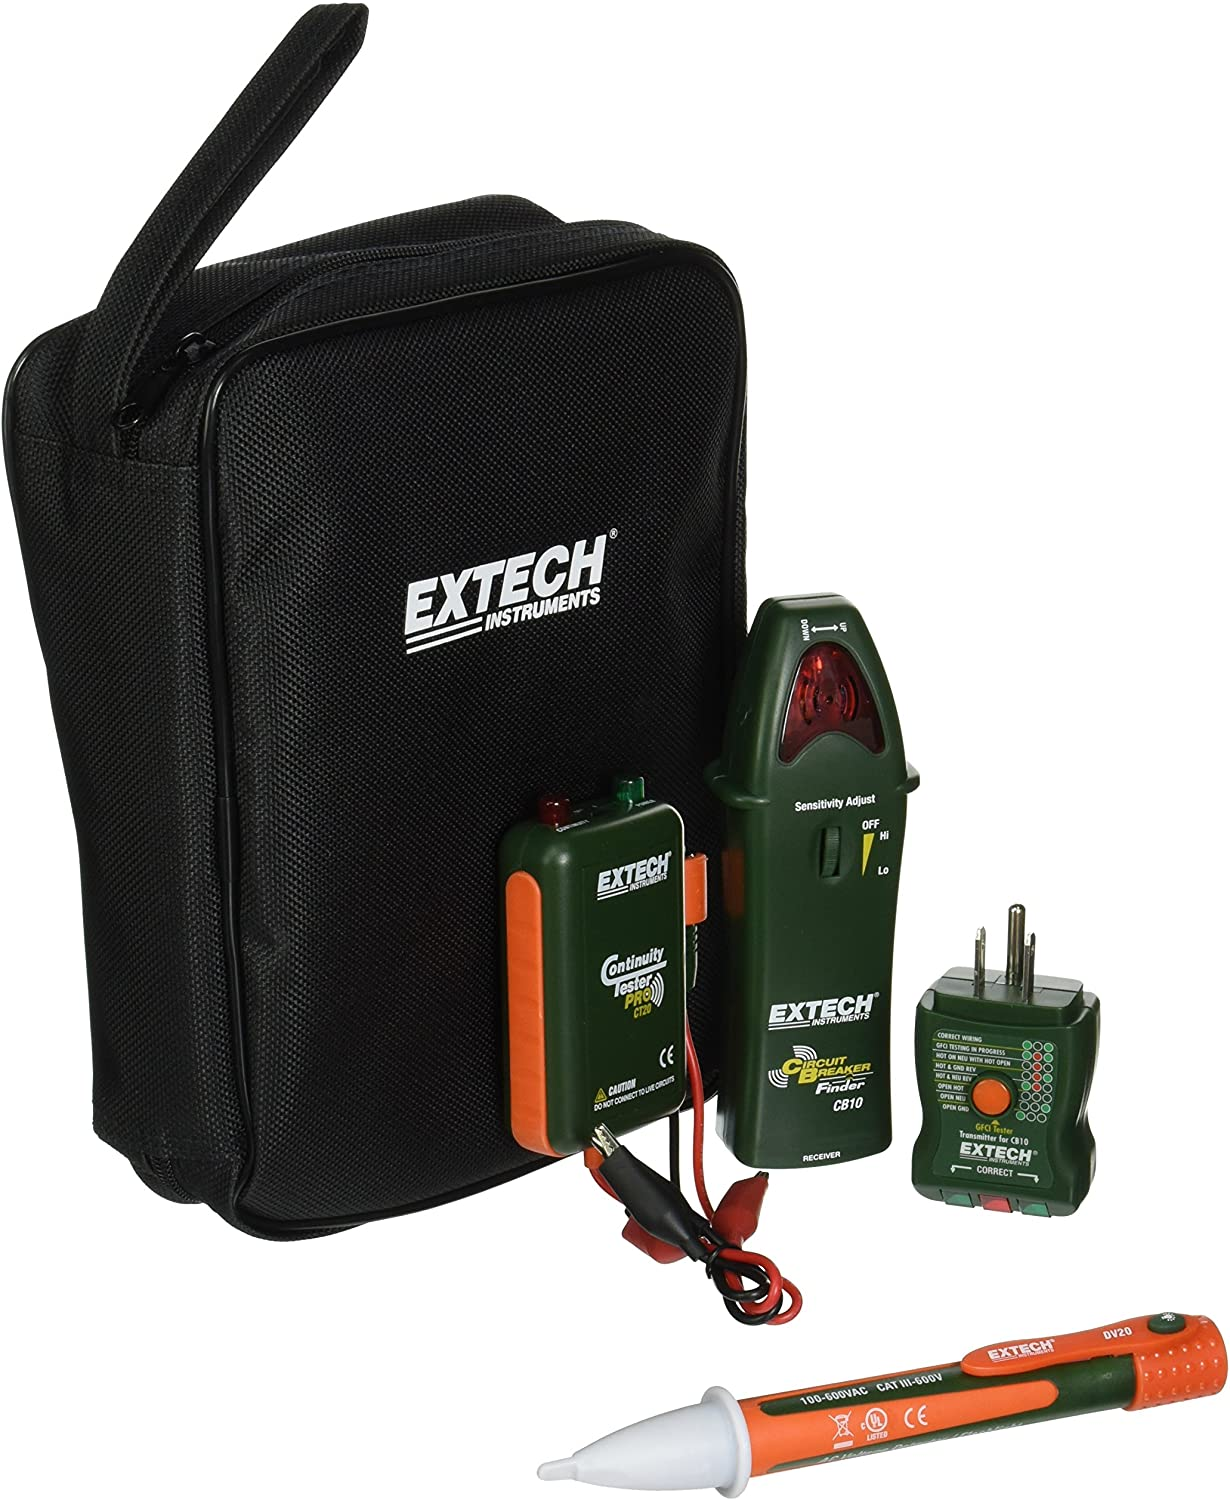 Extech Electrical Troubleshooting Kit